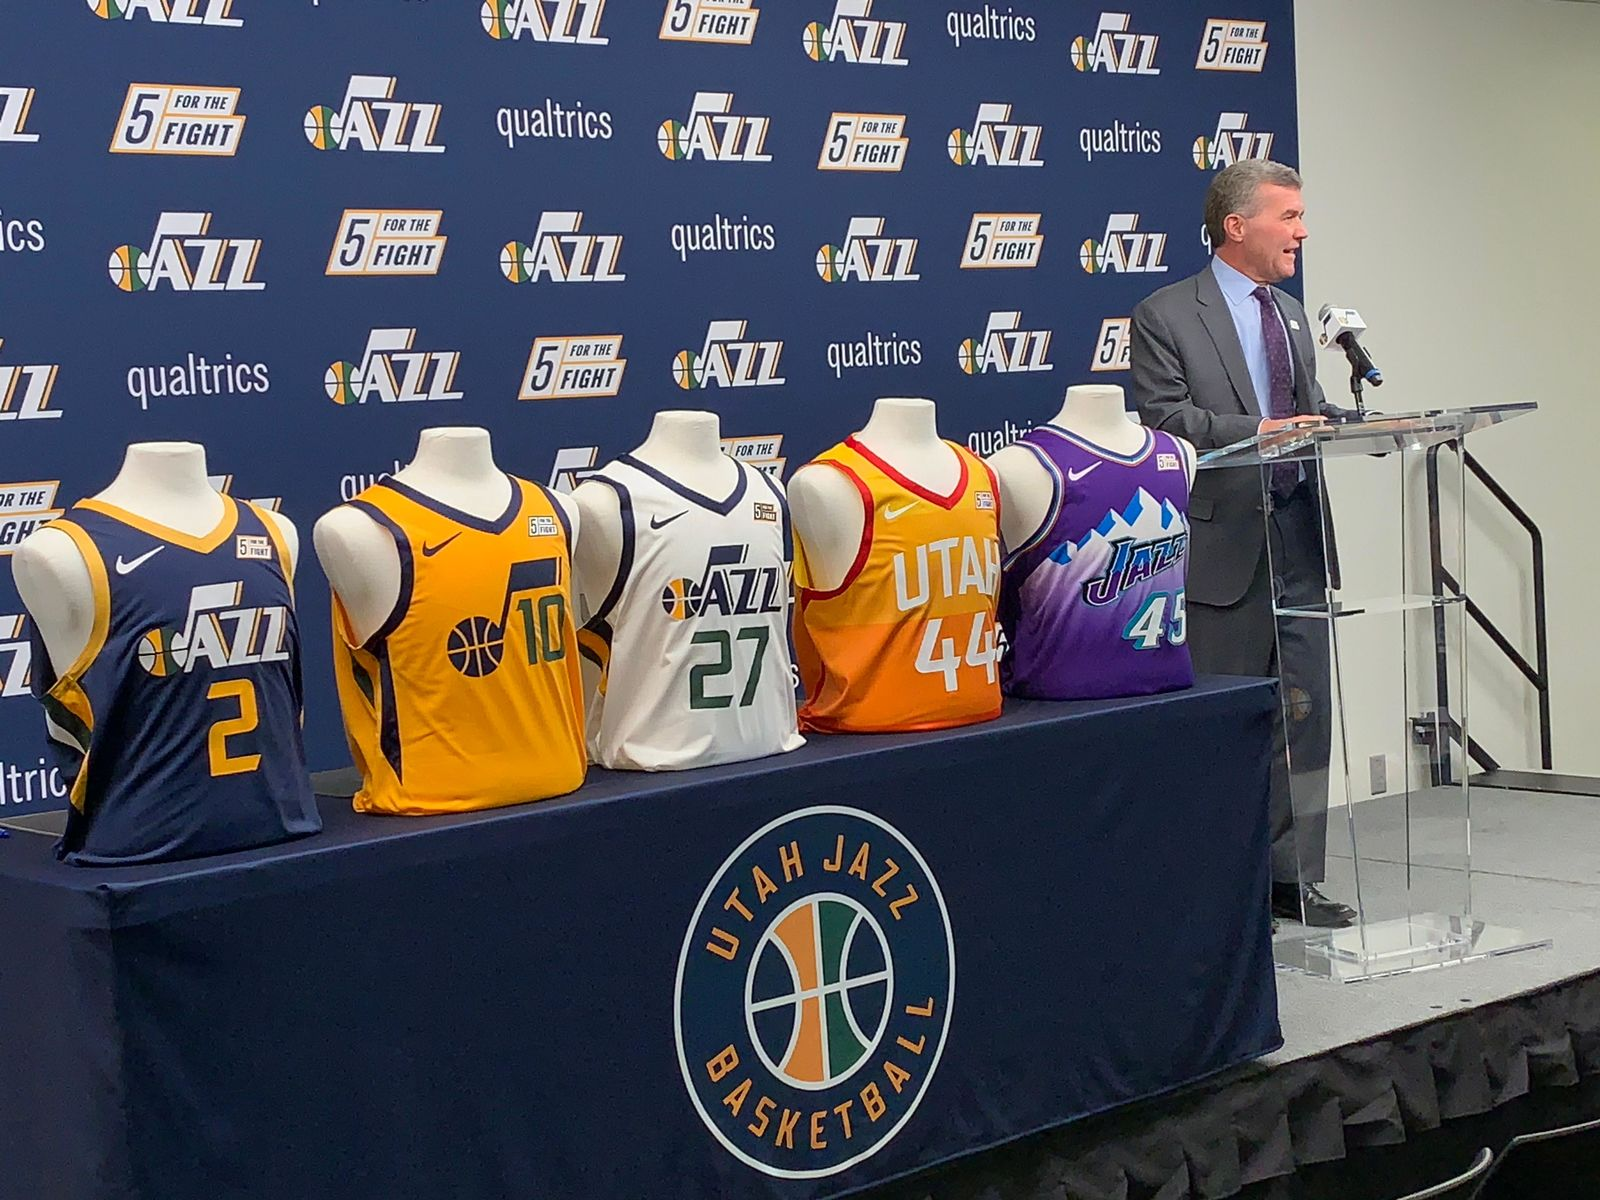 President of the Utah Jazz Jim Olson speaks at a press conference on Monday, October 21, 2019. (Photo: Adam Forgie, KUTV)<p></p><p></p>